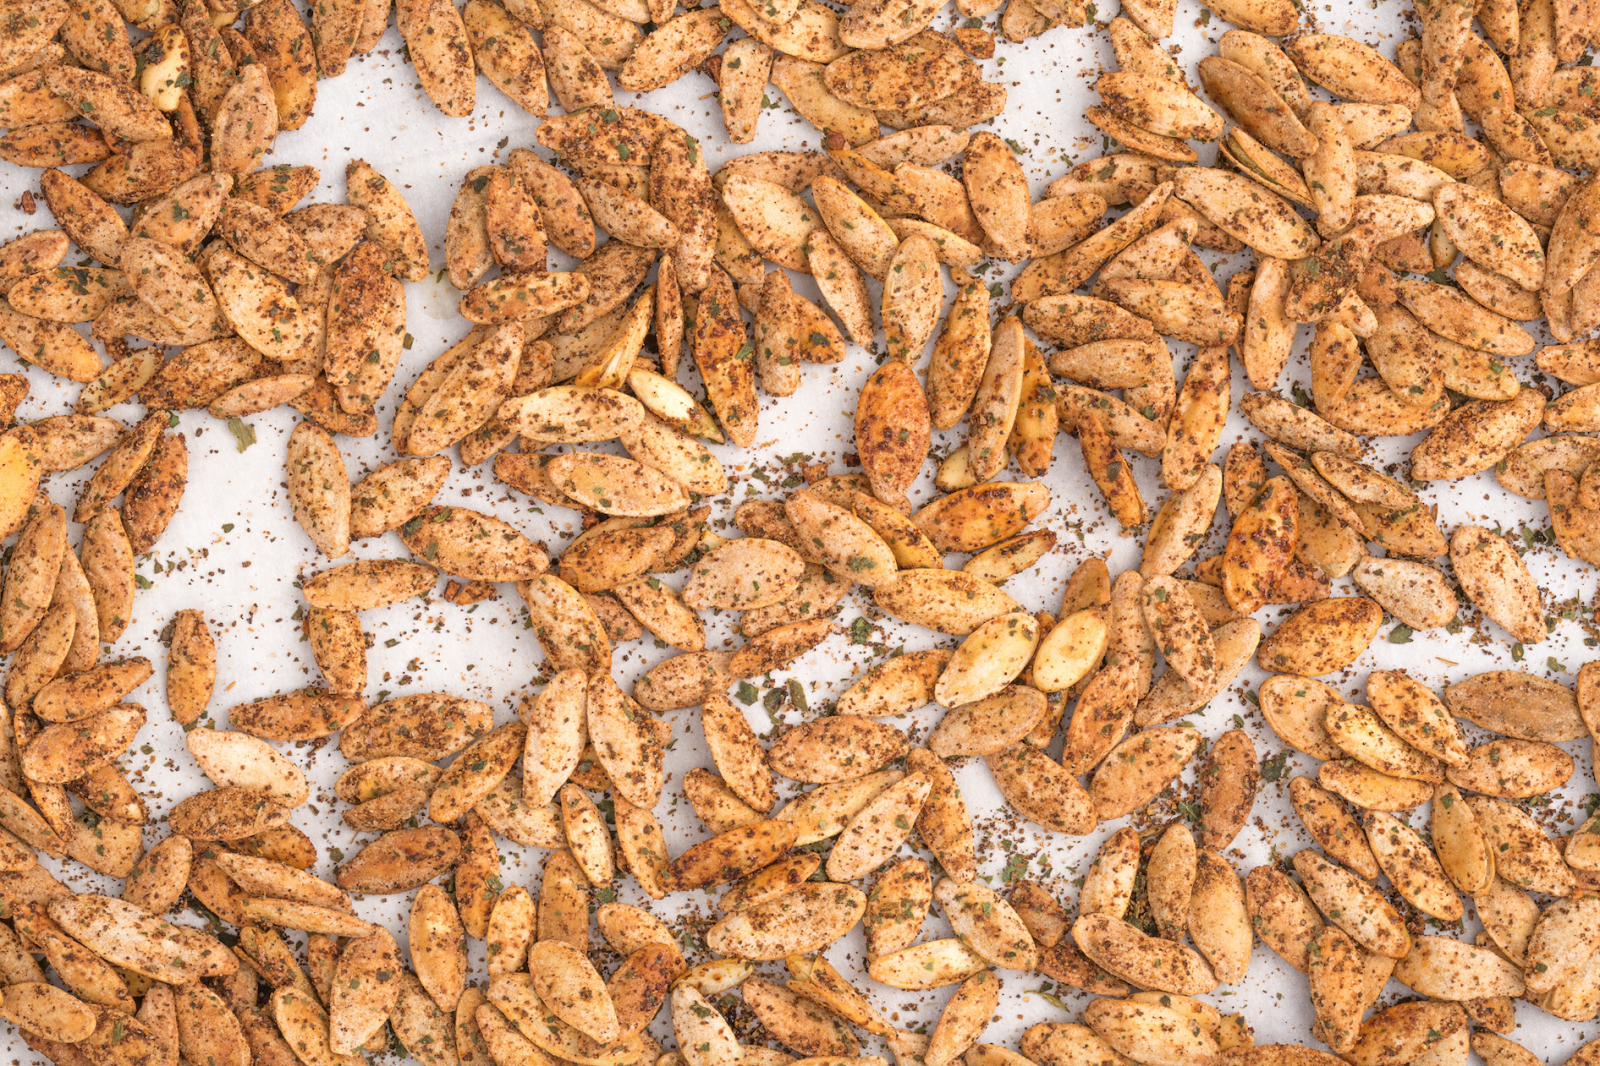 Taco-Lime Pumpkin Seeds  - Delish.com this site has more recipes for pumpkin seeds if this doesn't work for you.